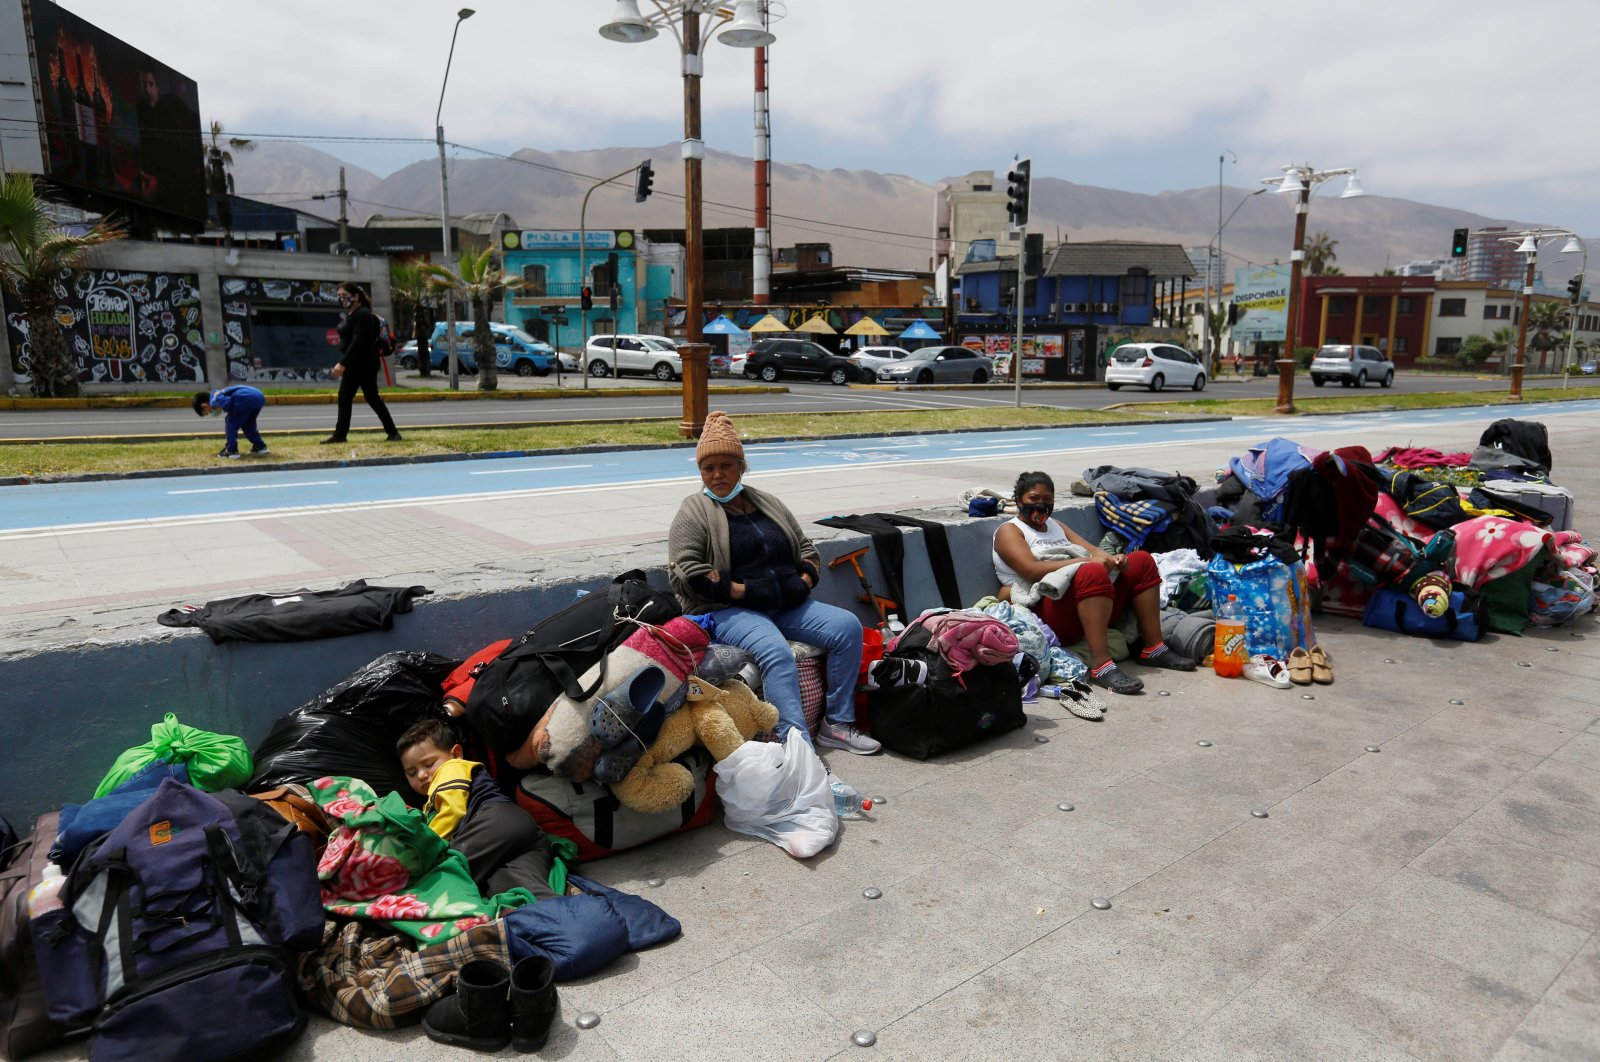 Venezuelan migrants sit along a street next to the ocean after their camp was destroyed during violent anti-immigration protests, in Iquique, Chile, September 27, 2021. (Reuters Photo)